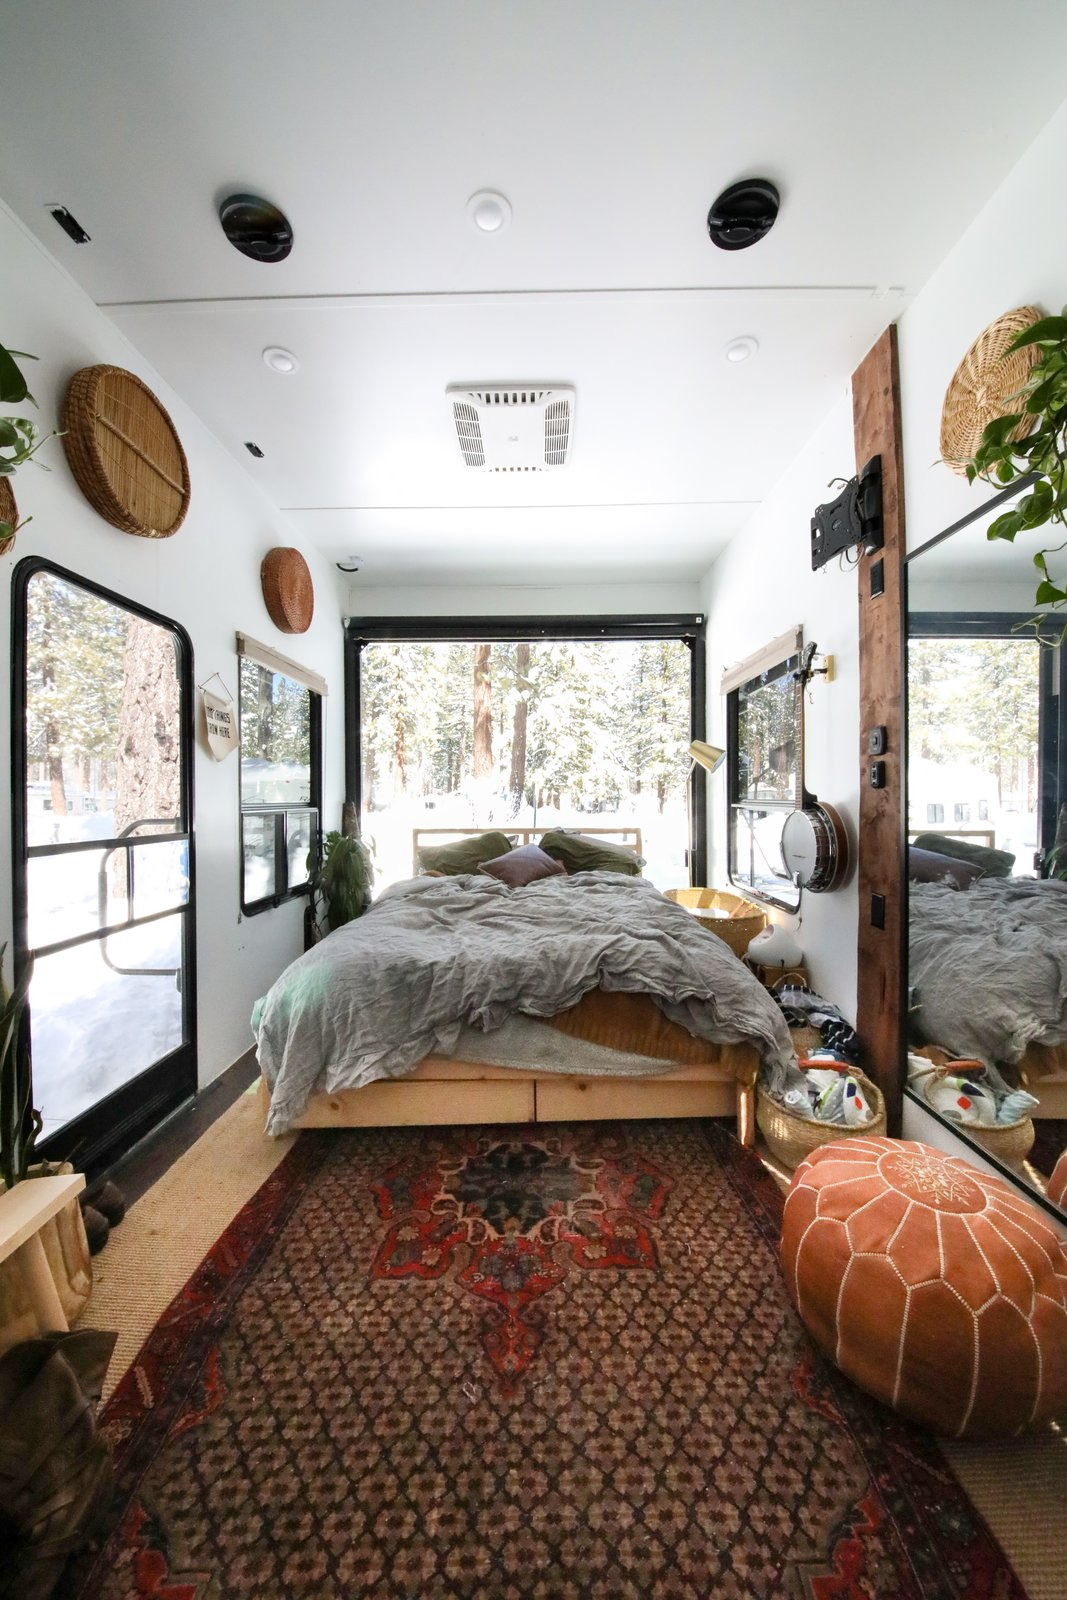 Autumn and Rusty's bedroom is a space where the couple can relax and recharge after a long day.